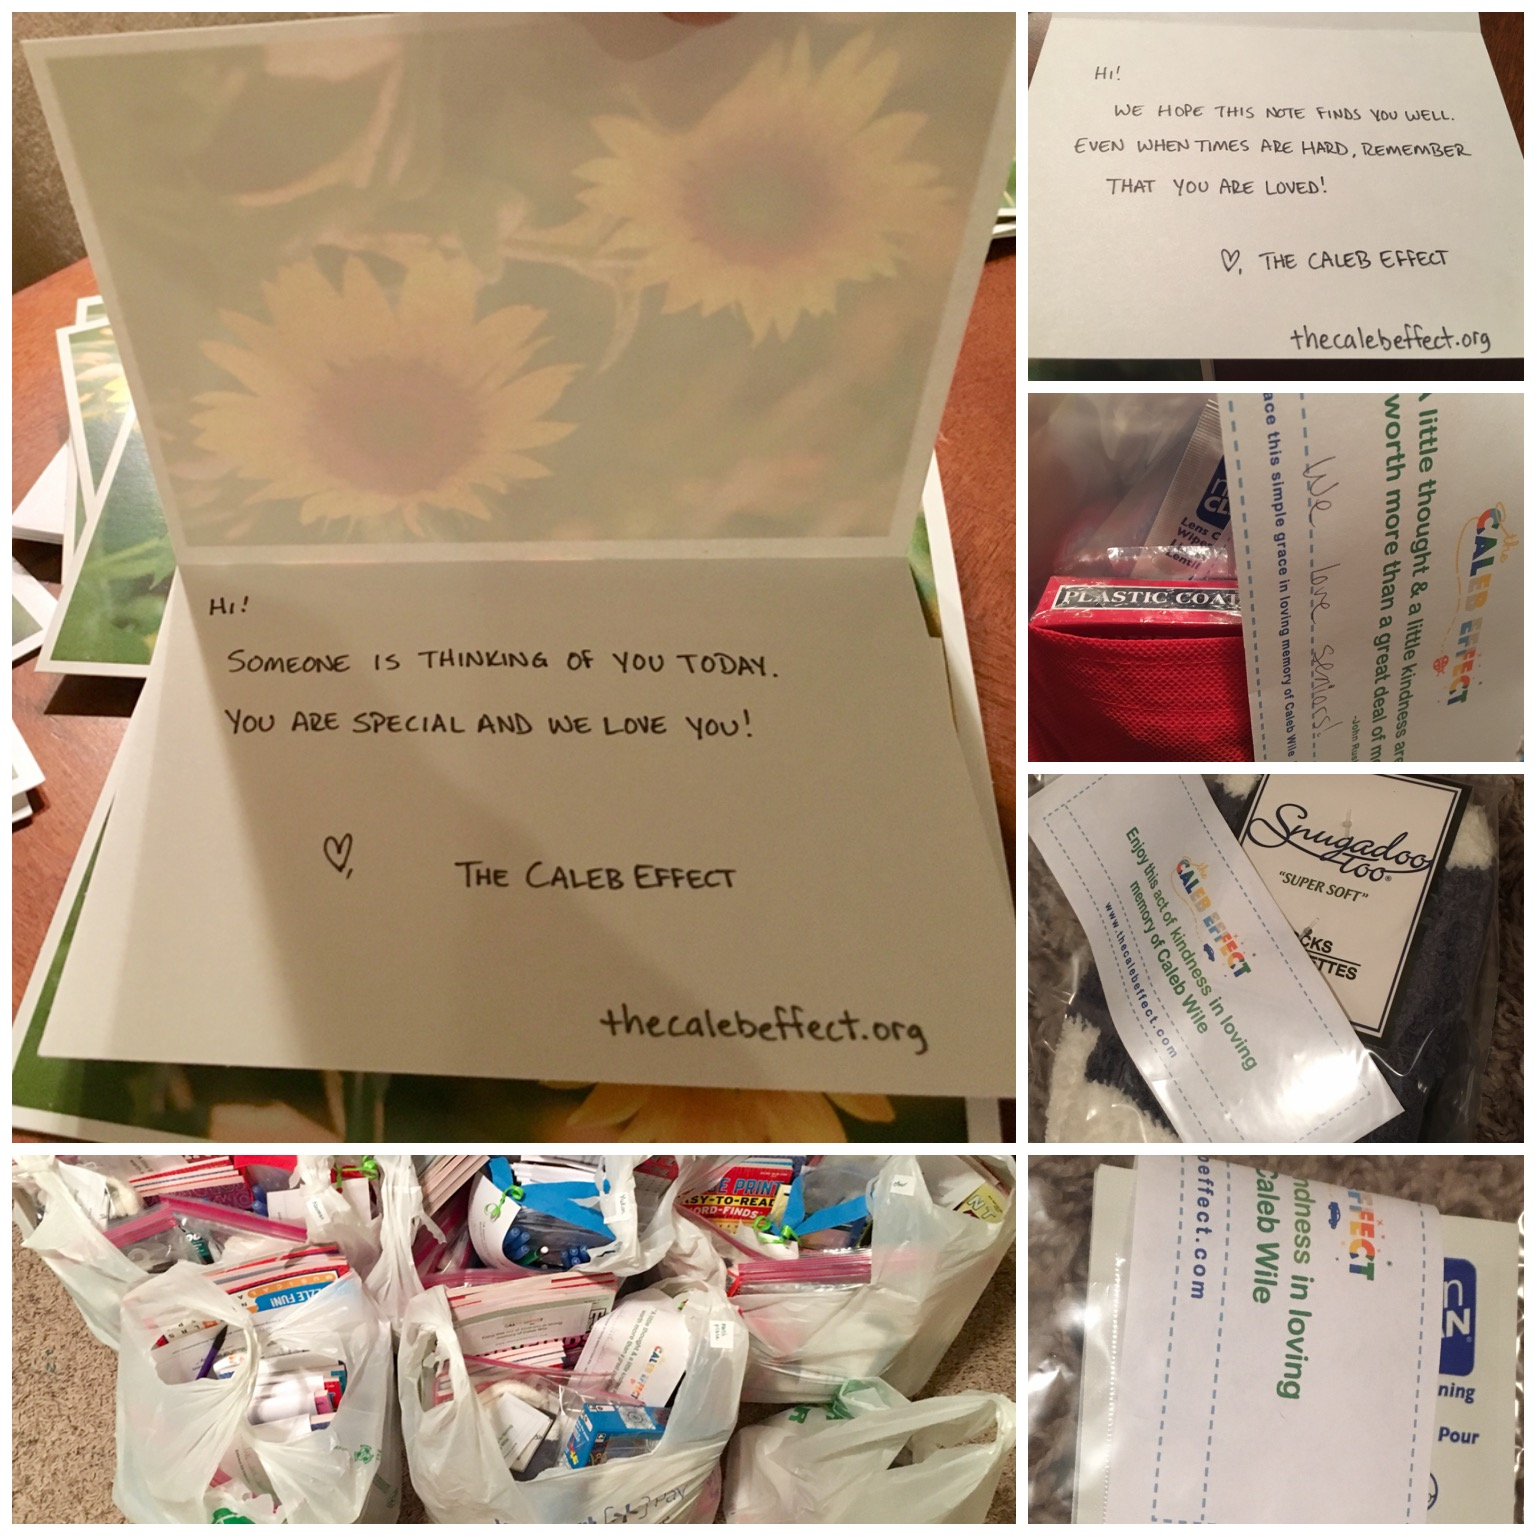 Handwritten notes to let people know we love seniors and that we care.